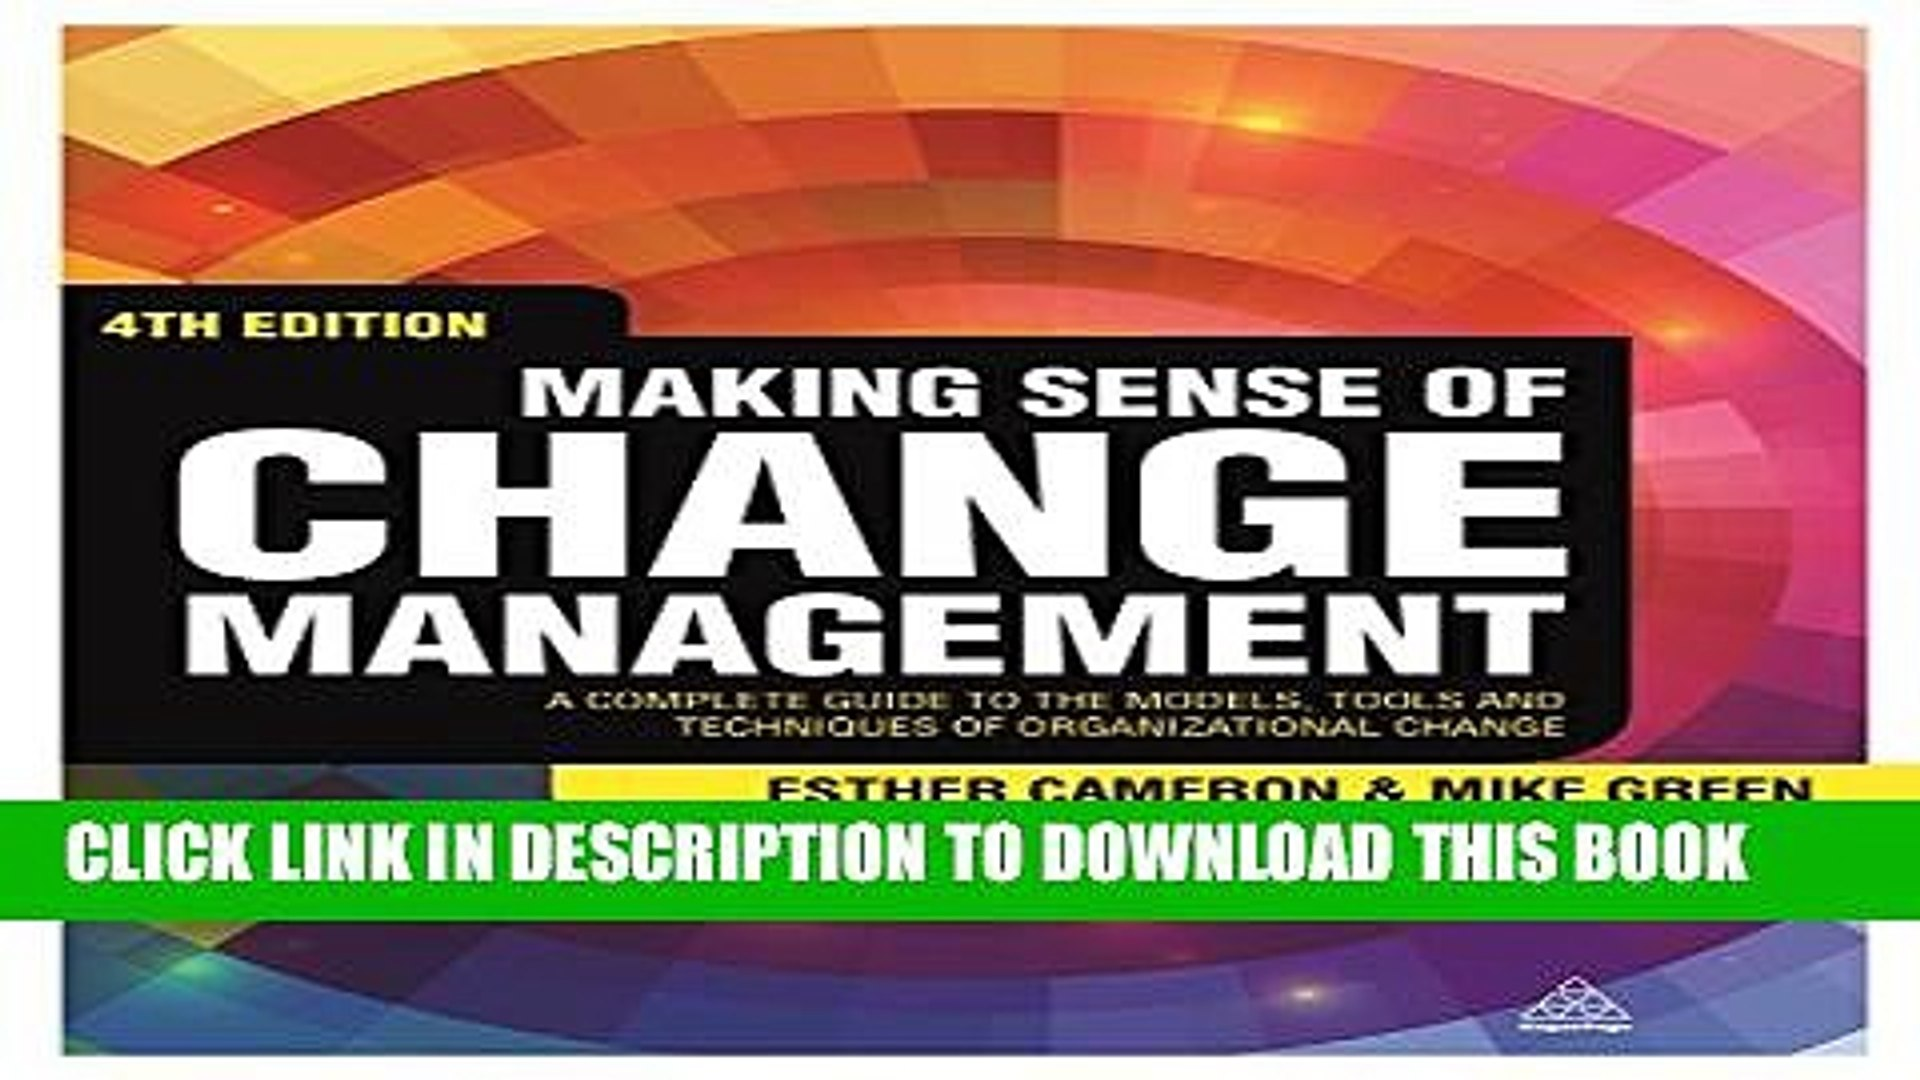 New Book Making Sense of Change Management: A Complete Guide to the Models, Tools and Techniques